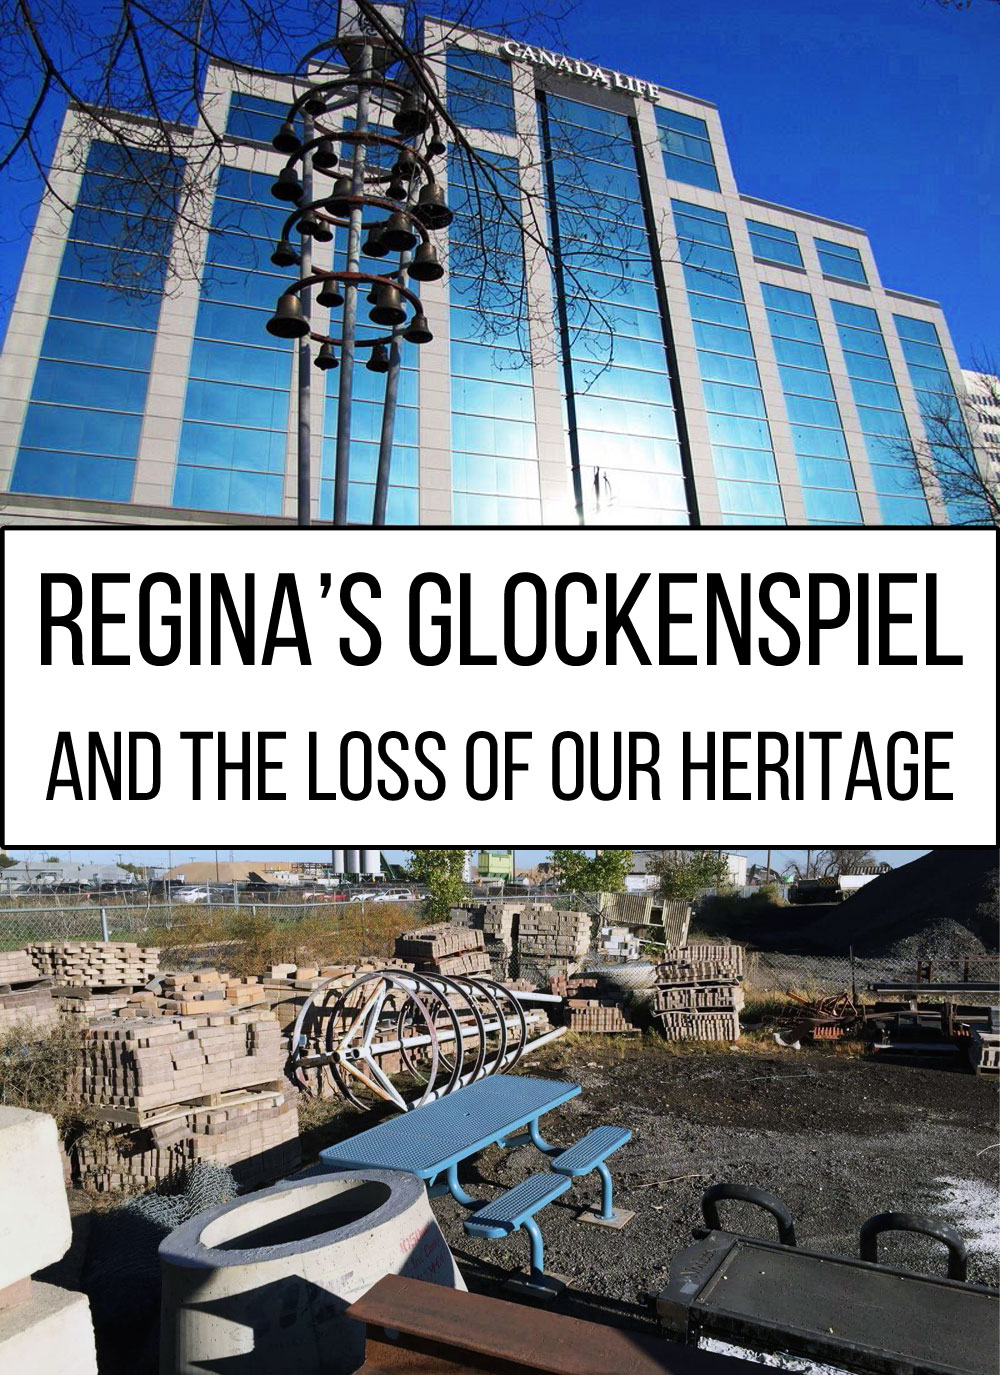 Regina's Glockenspiel and The Loss of Our Heritage